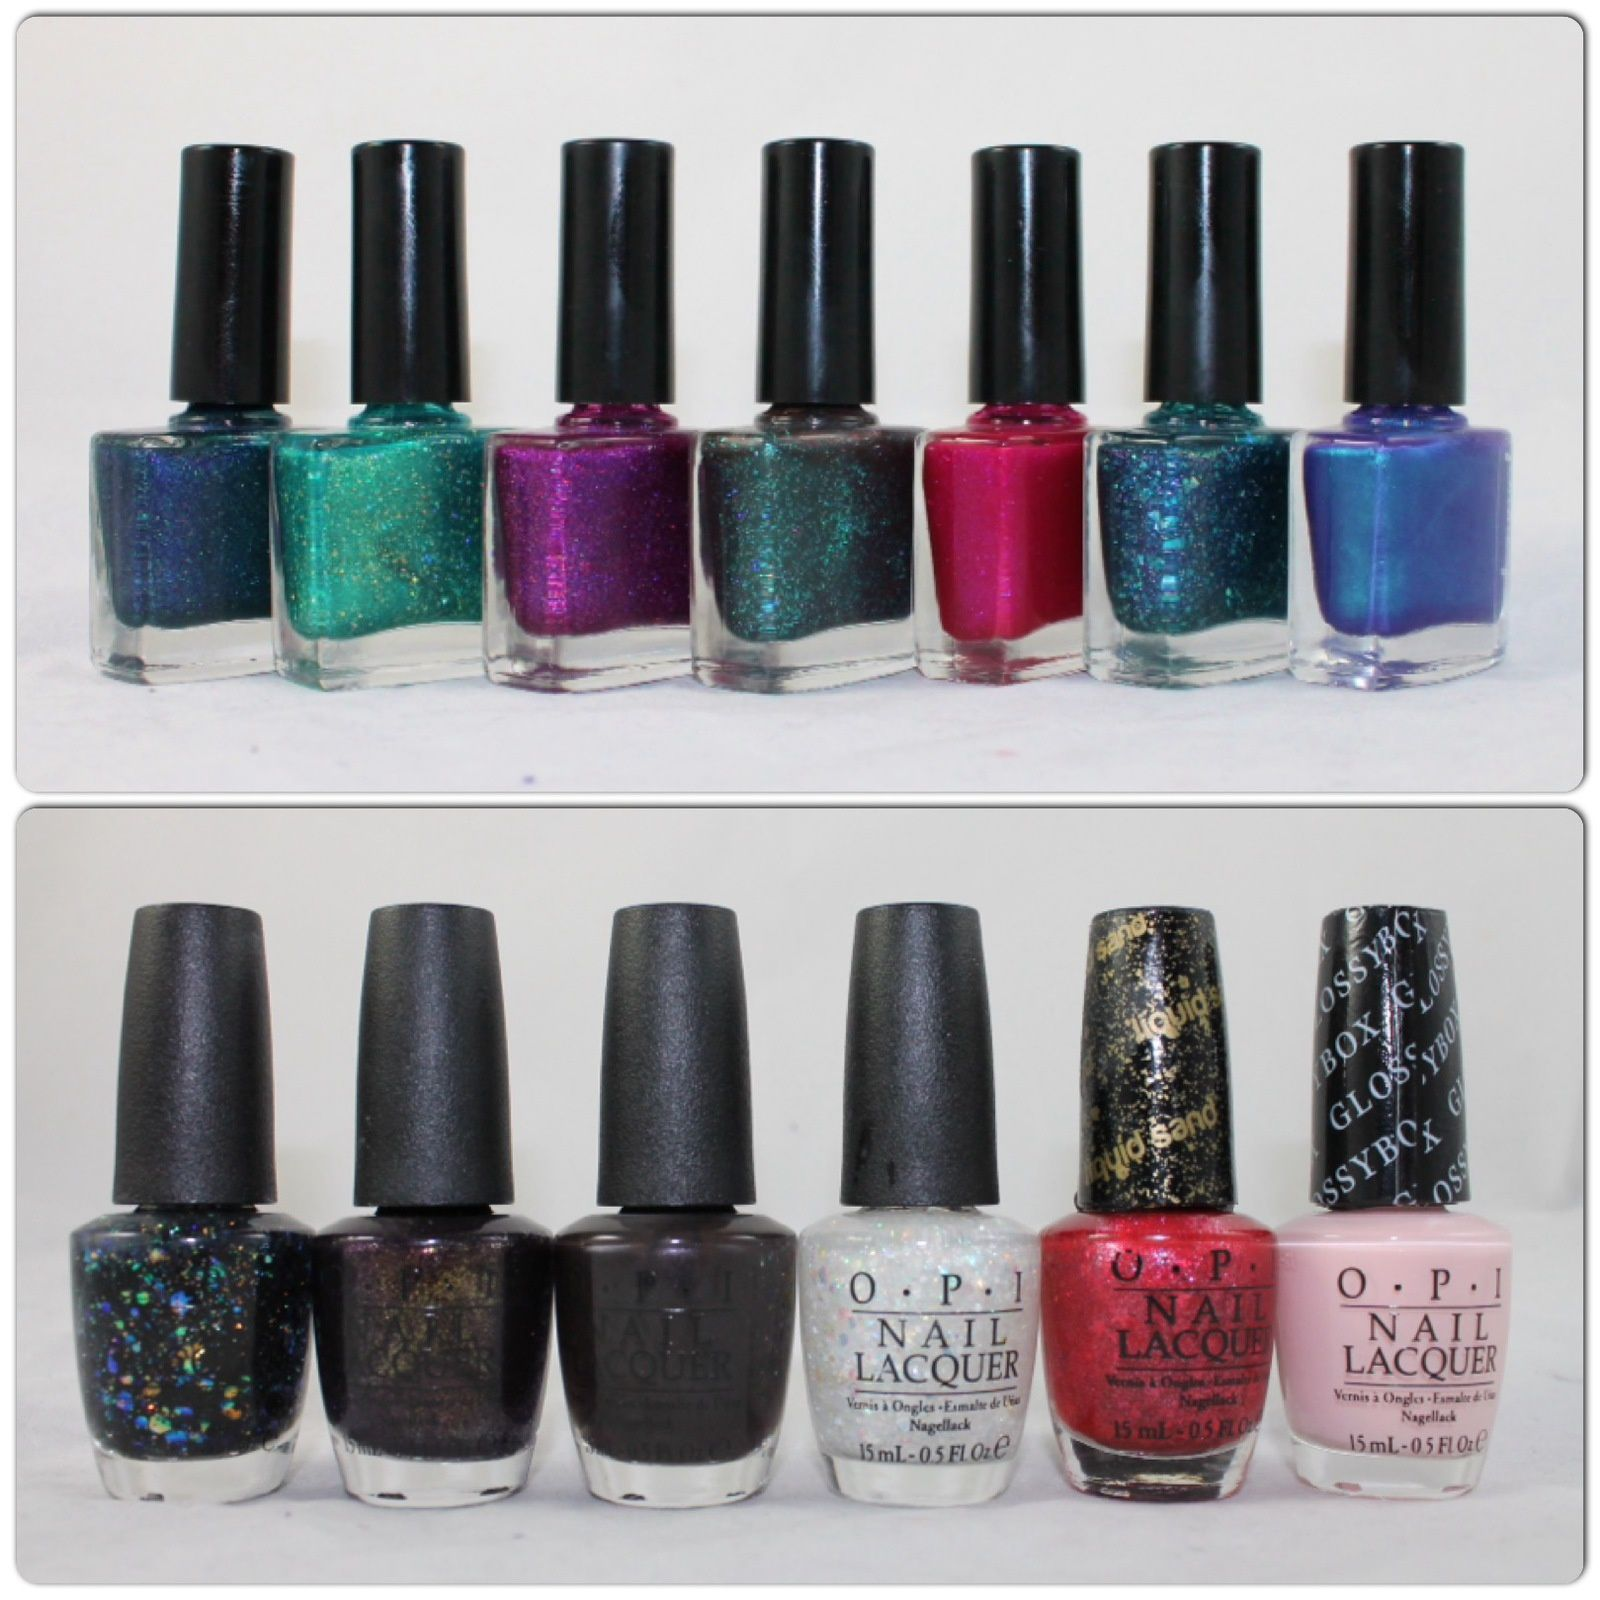 Femme Fatale Alone in the Darkness, Stand in the Clouds, Touch of Madness, In His House He Waits Dreaming, Brain Link, All sanity is Lost & Under The Waters. OPI Comet in the Sky, First Class Desires, Love is Hot and Coal, Snow Globetrotter, The Impossible & Pink Outside the Glossybox.